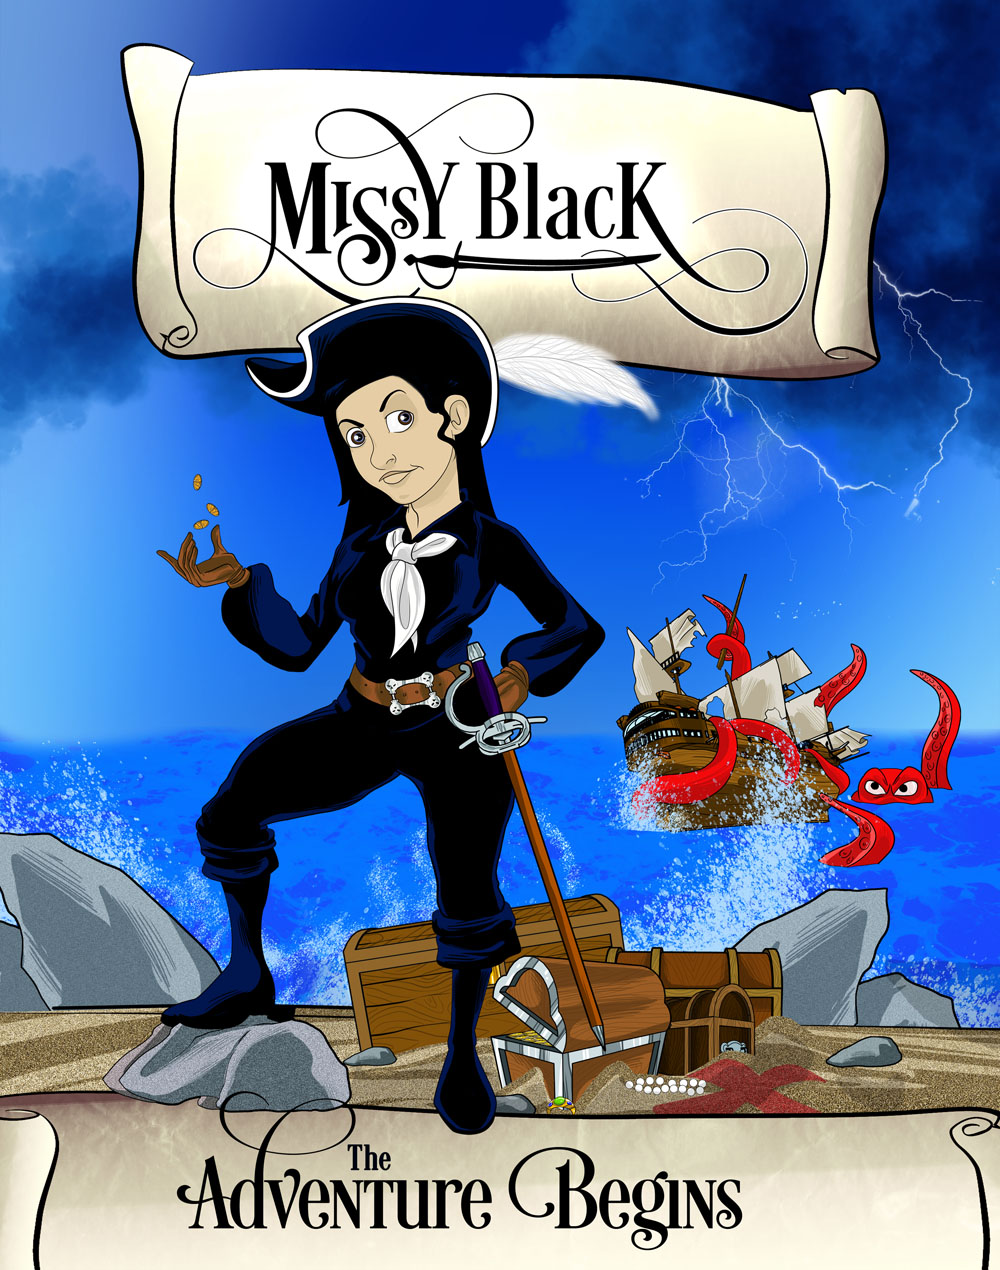 Poster Design for Children's Missy Black Illustrated Book